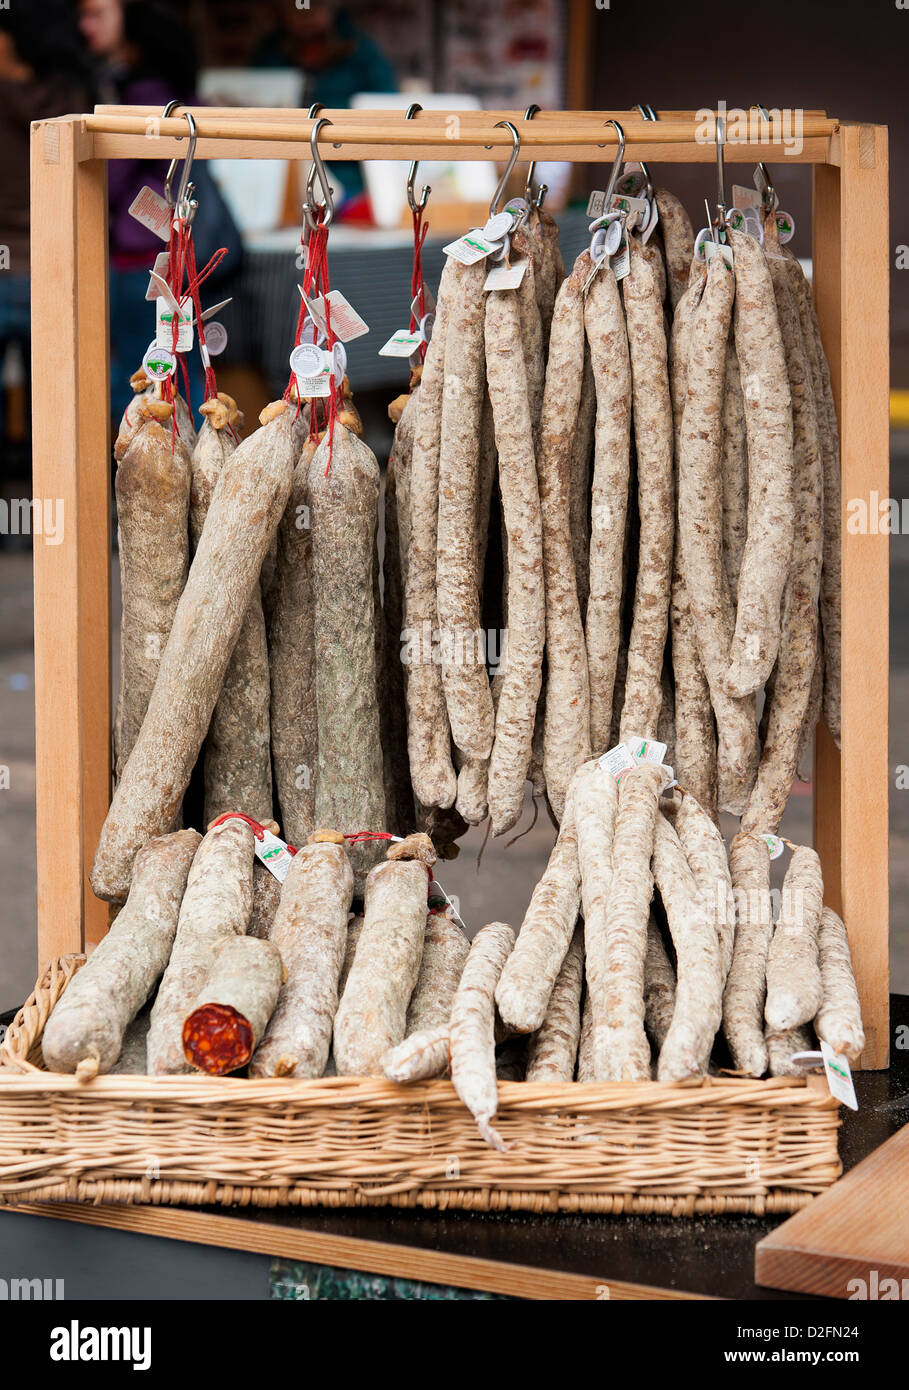 Selection of salami sausage hanging up in a market stall - Stock Image